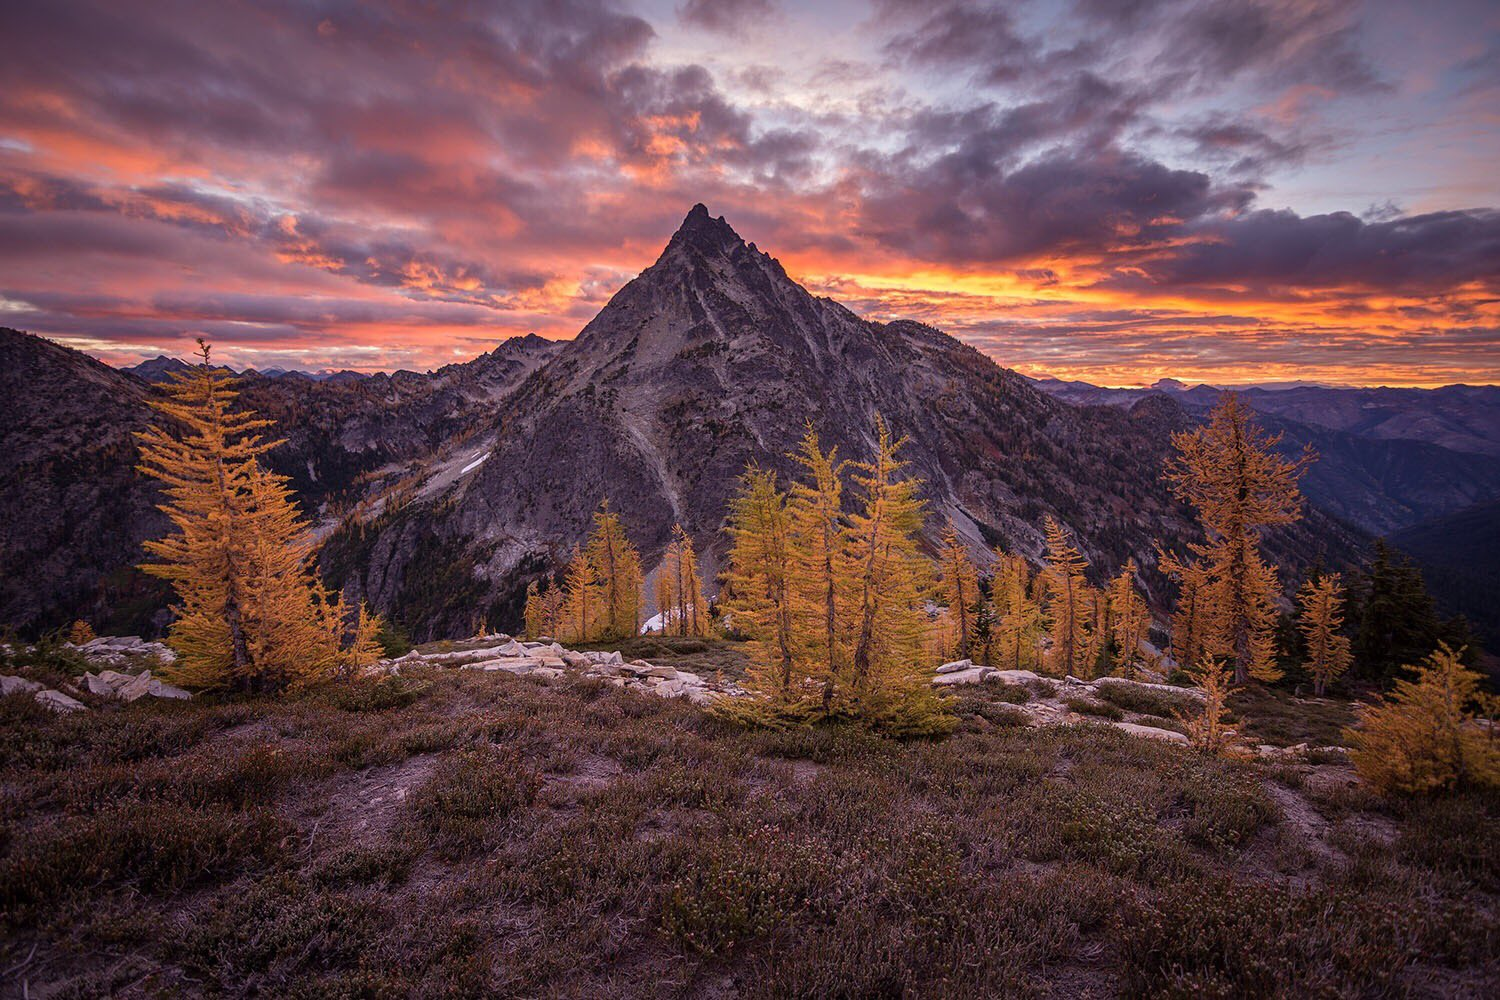 A memory that'll last a lifetime: Witnessing sunrise over Bowen Pass @NCascadesNPS by Crystal Brindle #Washington https://t.co/c2AaXbIFT7